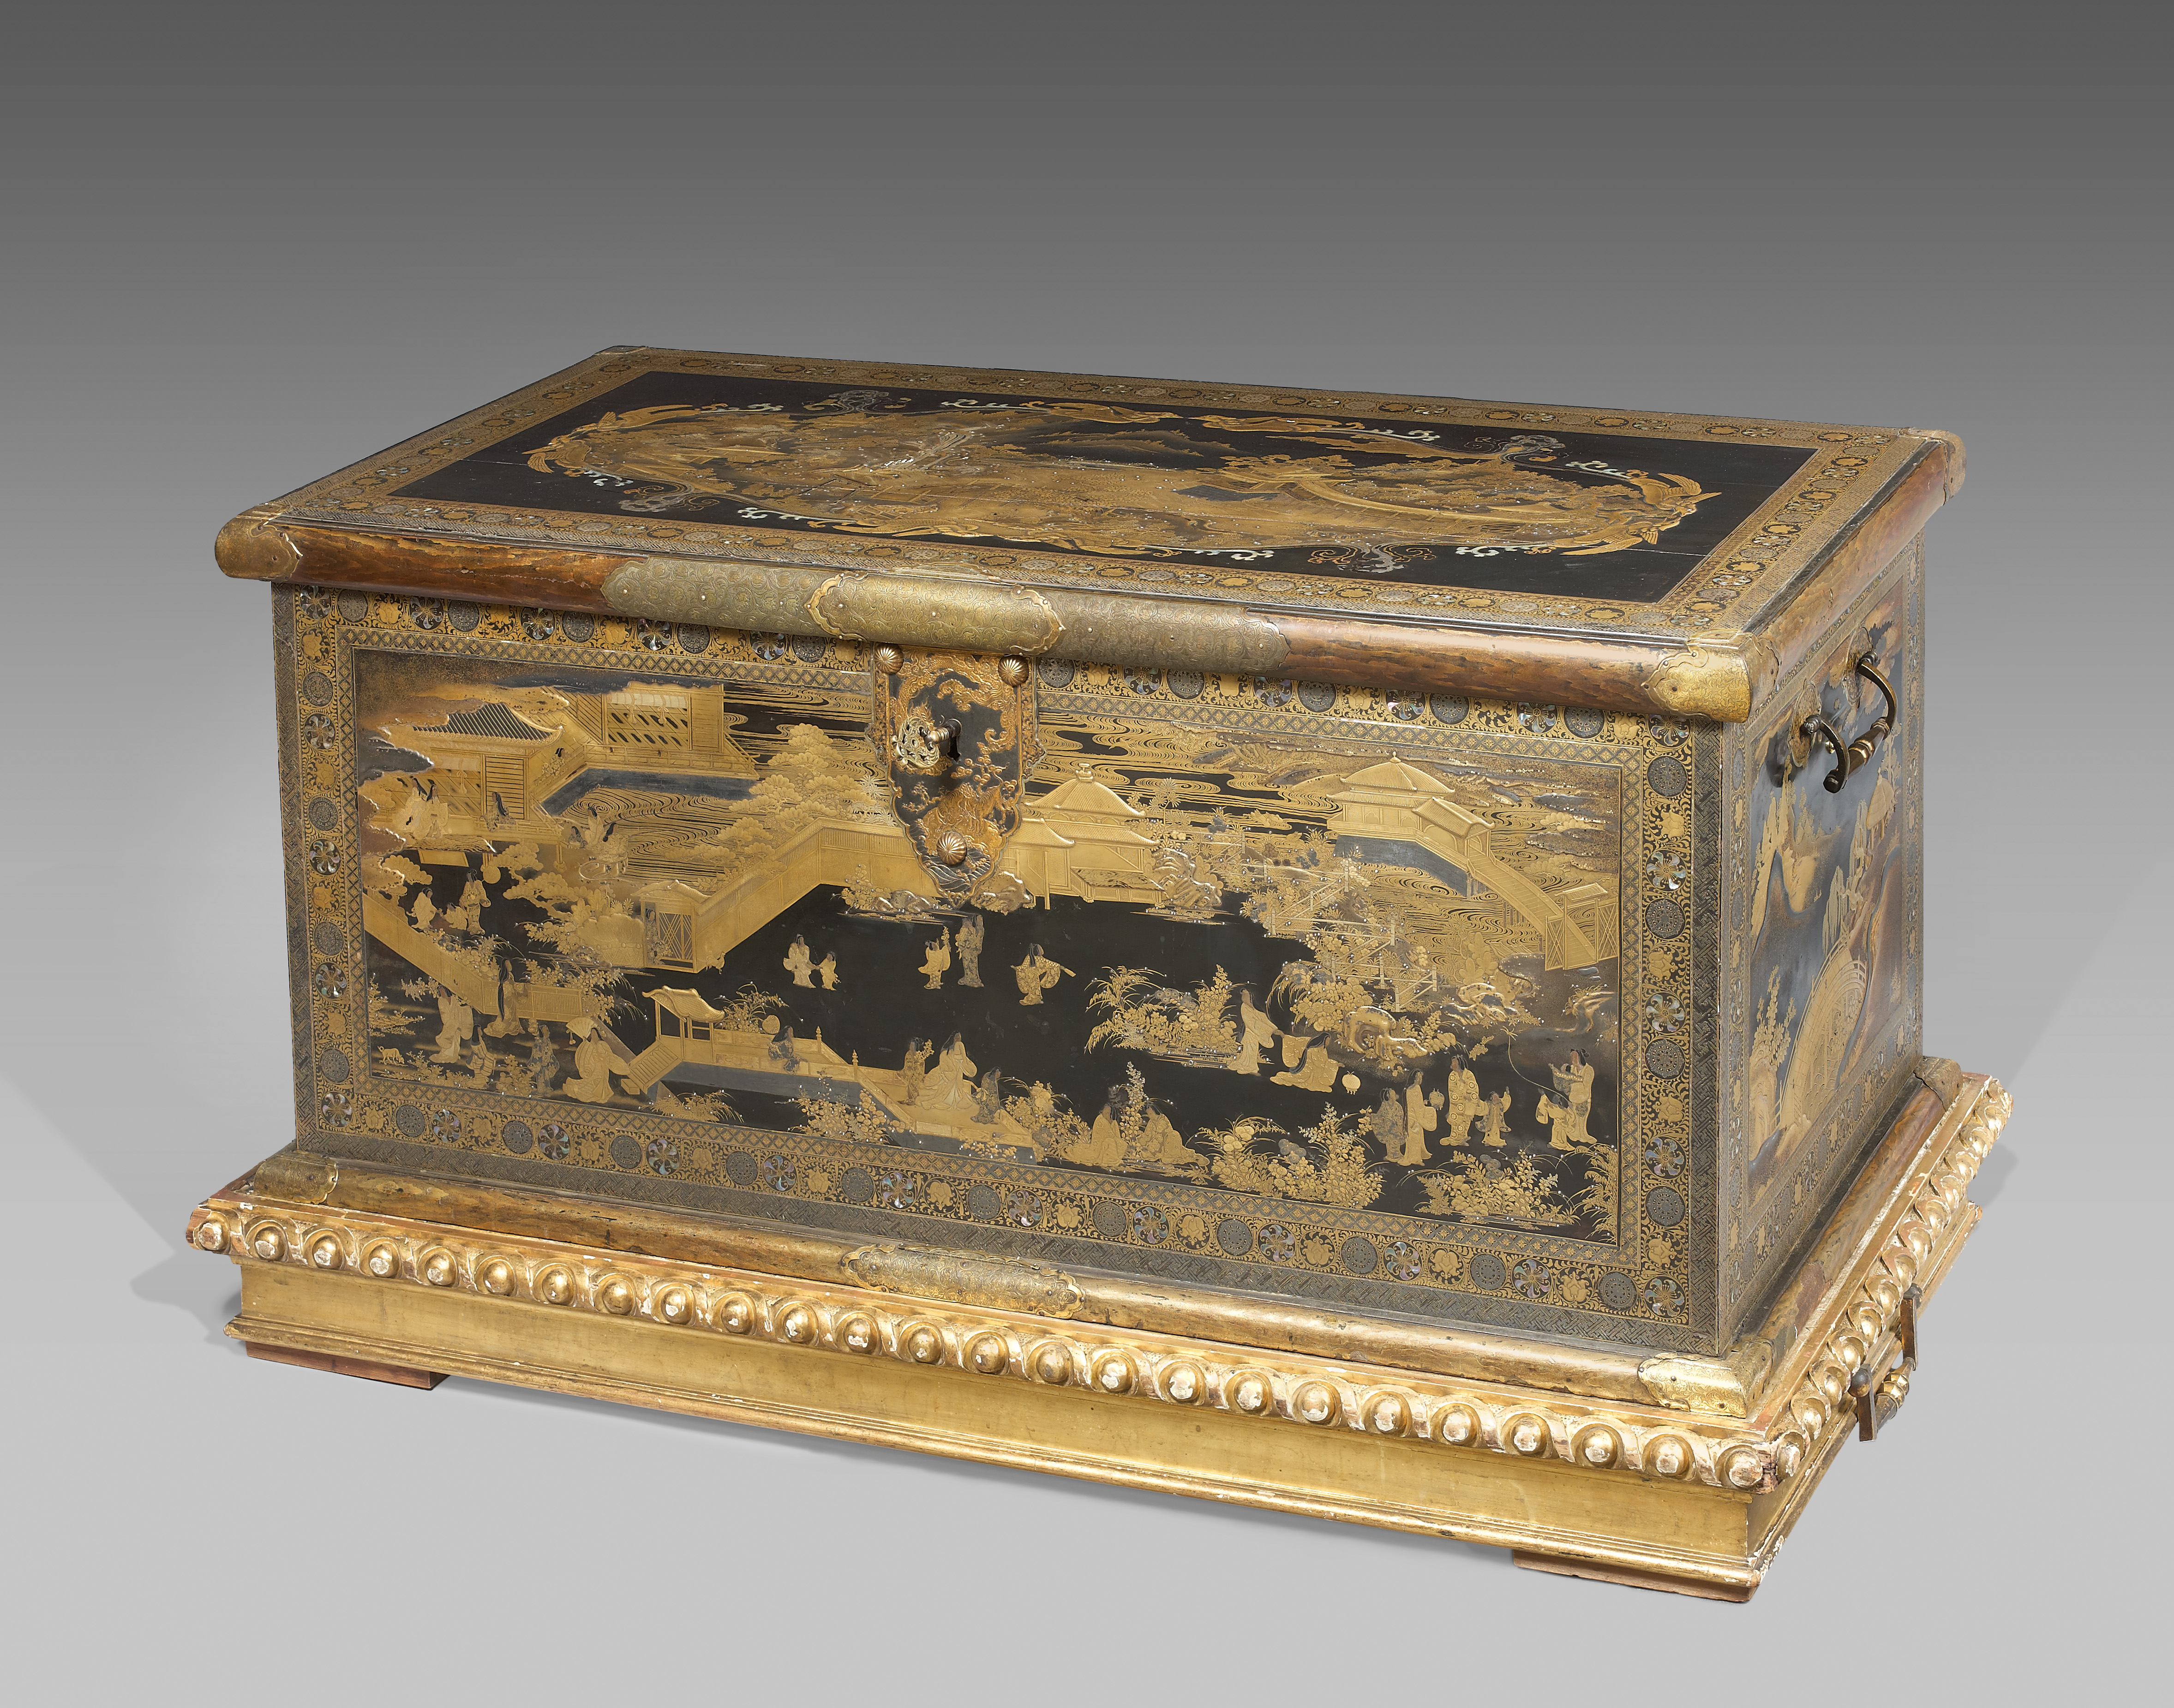 The History Blog » Blog Archive » Mazarin's lost golden chest was